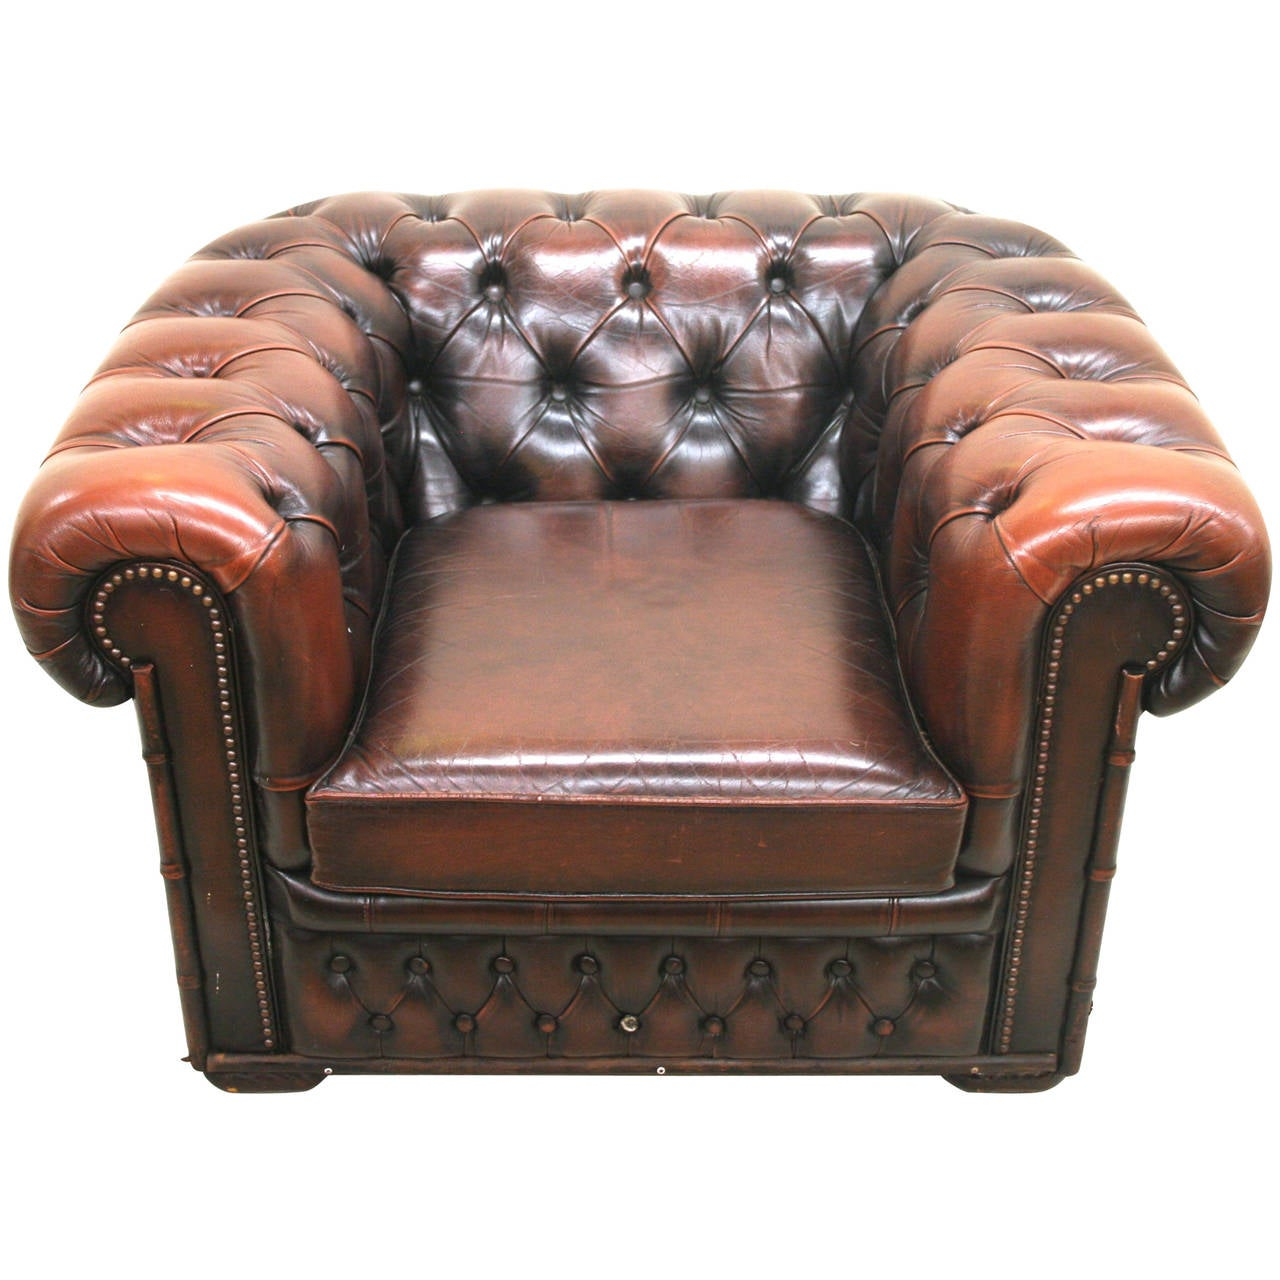 Leather Chesterfield Chair Leather Chesterfield Club Chair With Brass Nailheads And